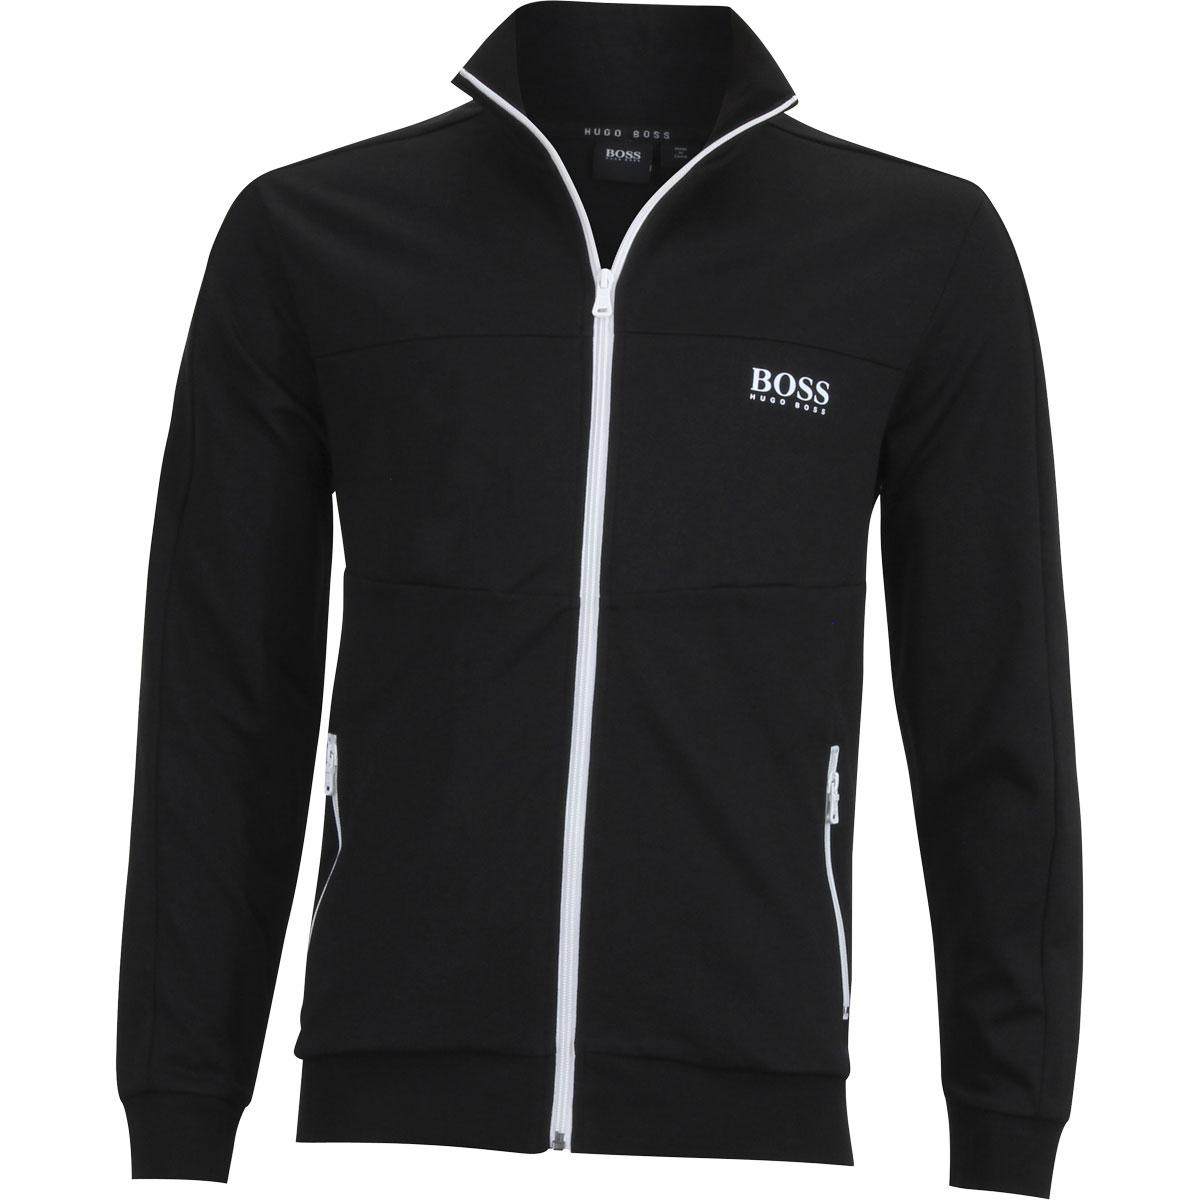 aa1ff634ef0 Hugo Boss Men s Zip Up Basic Long Sleeve Track Jacket by Hugo Boss